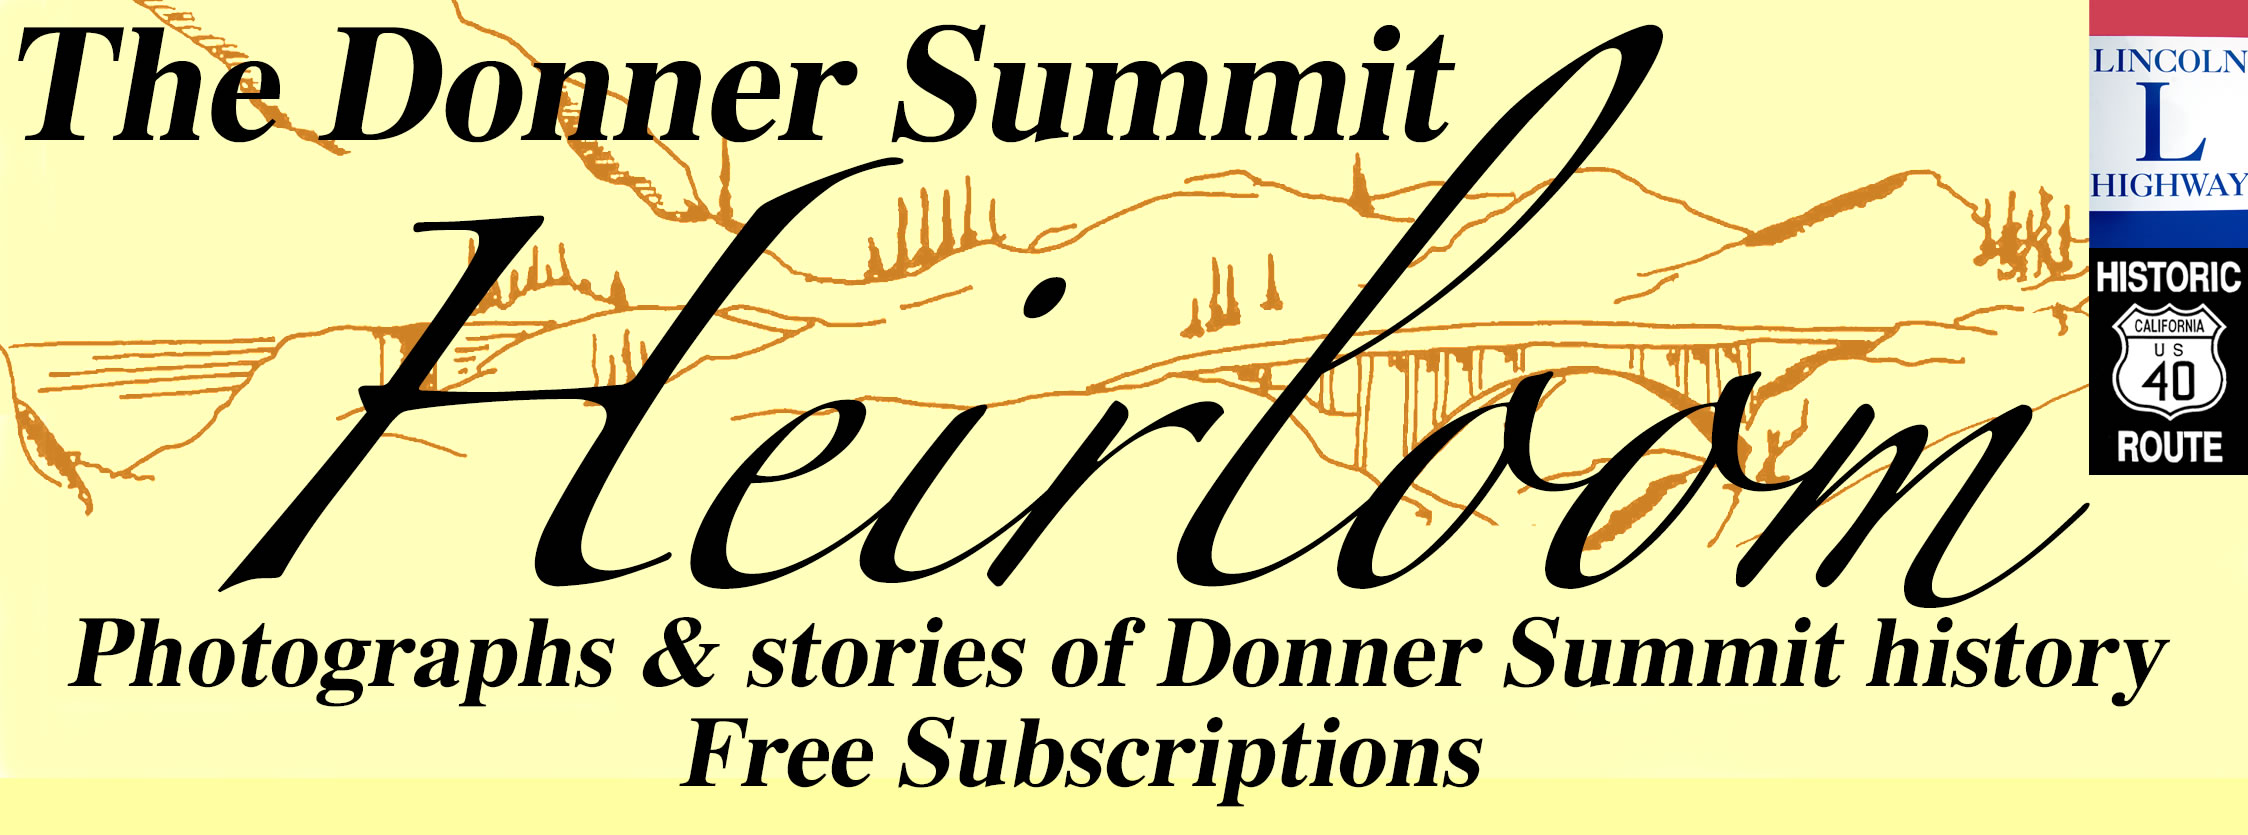 Donner Summit Historical Society - Norm Sayler's amazing newsletter and museum. Click here.